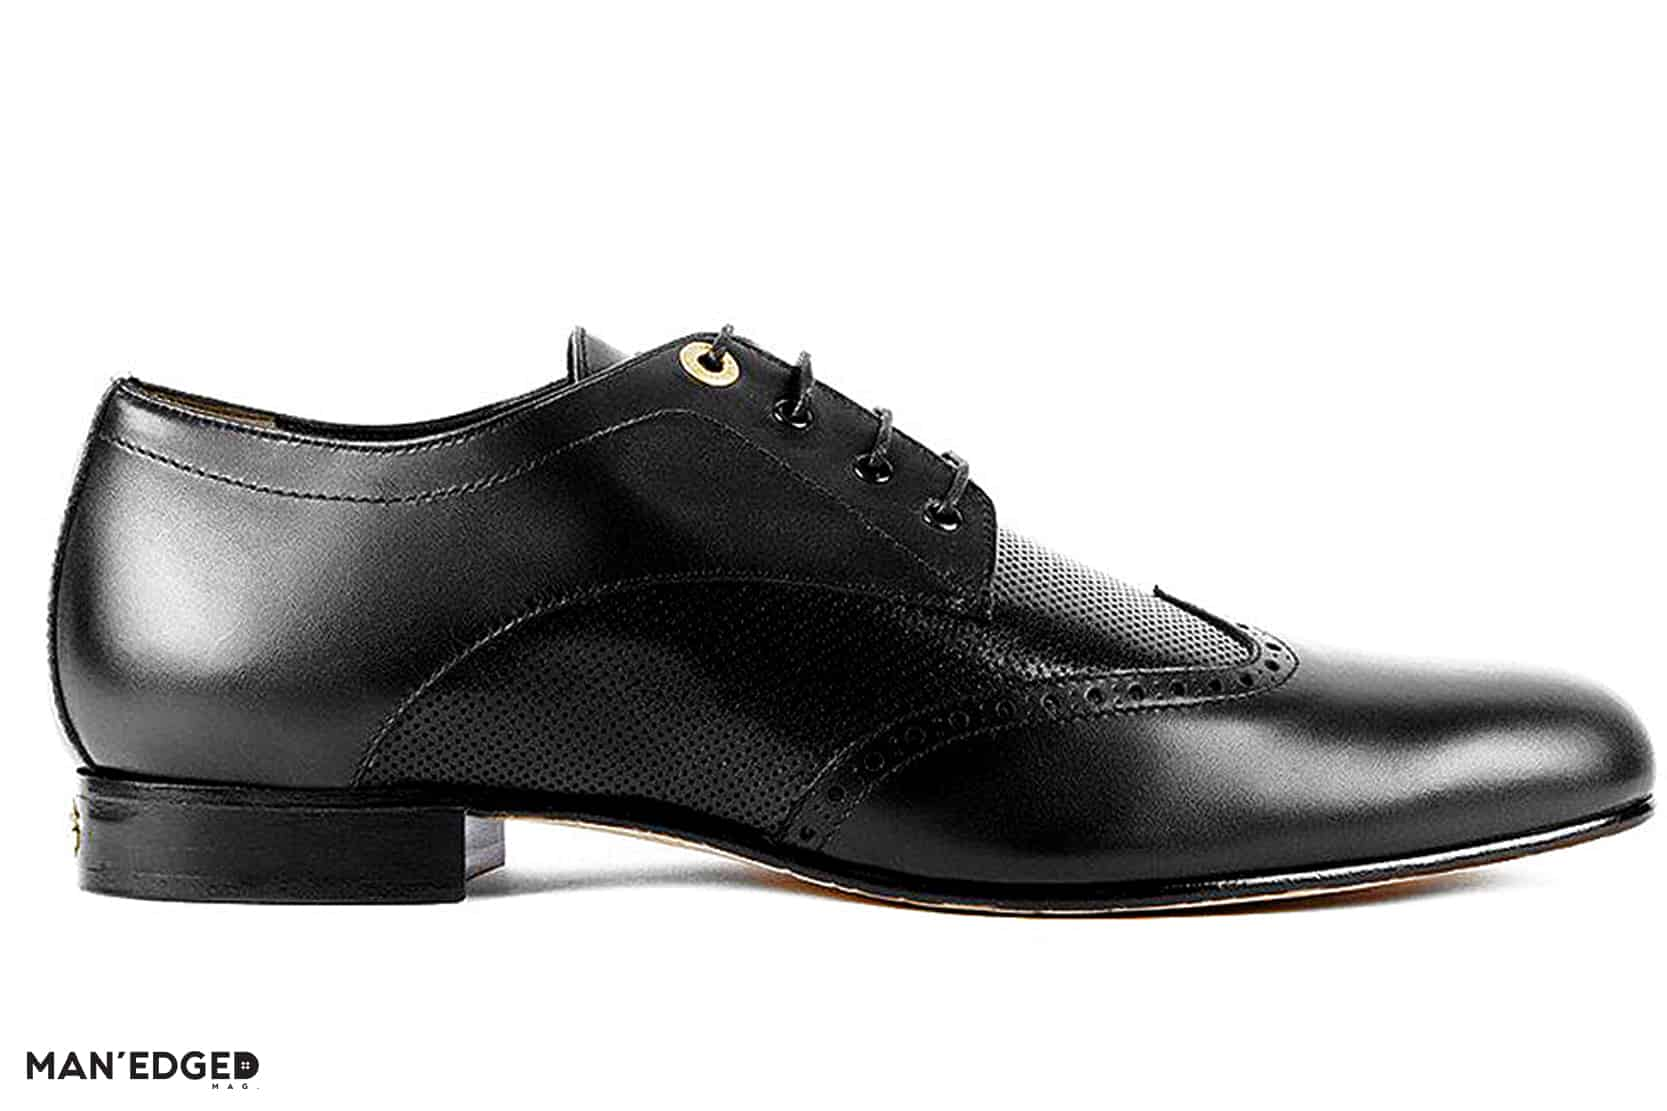 Men's Shoe by Rob McAllan featured in Gift Ideas for the Dapper Guy